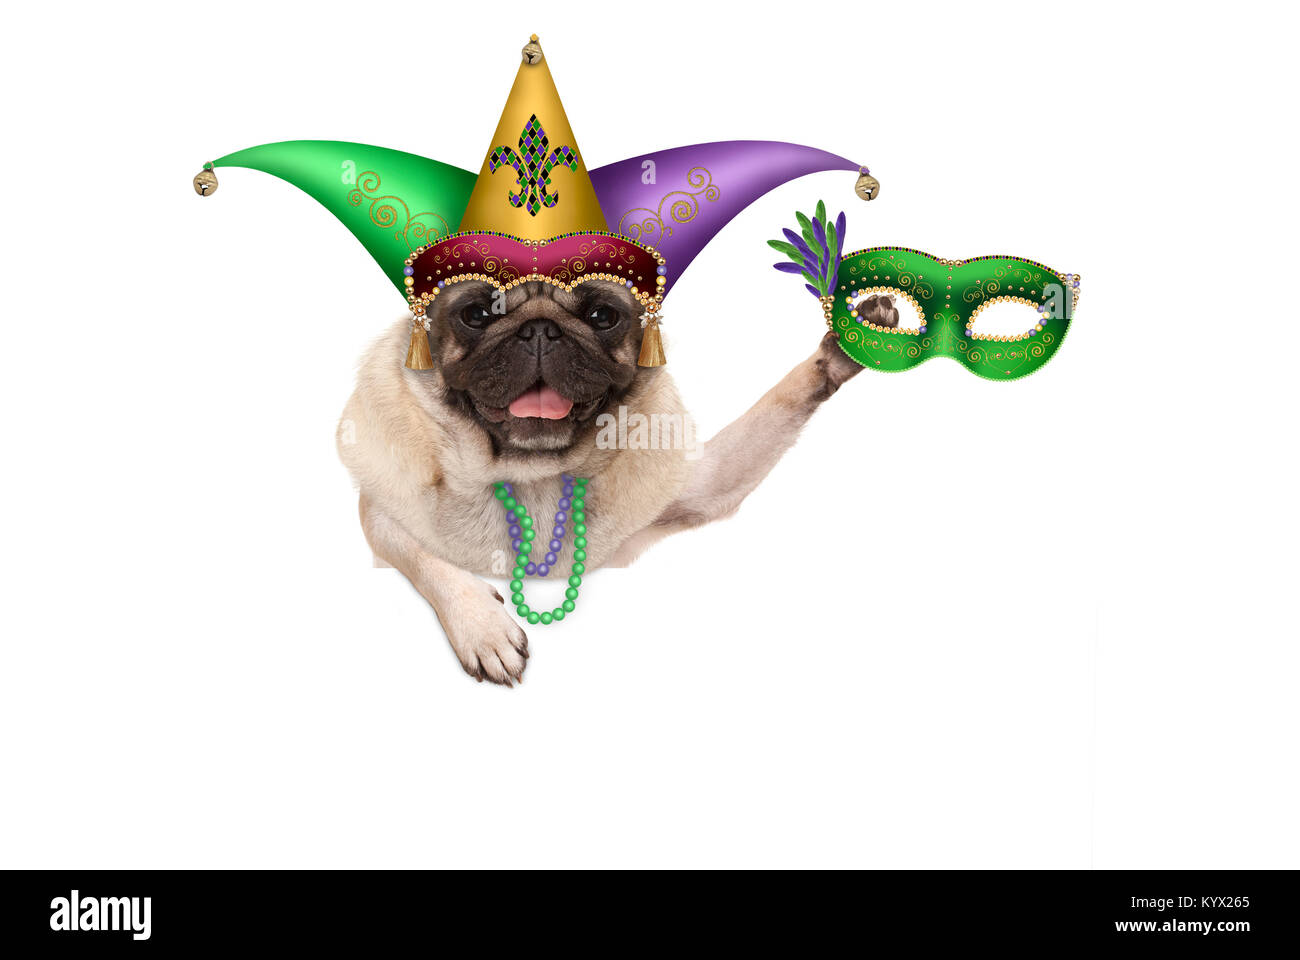 Mardi gras pug puppy dog with carnival harlequin hat and venetian mask hanging on blank banner, isolated on white - Stock Image